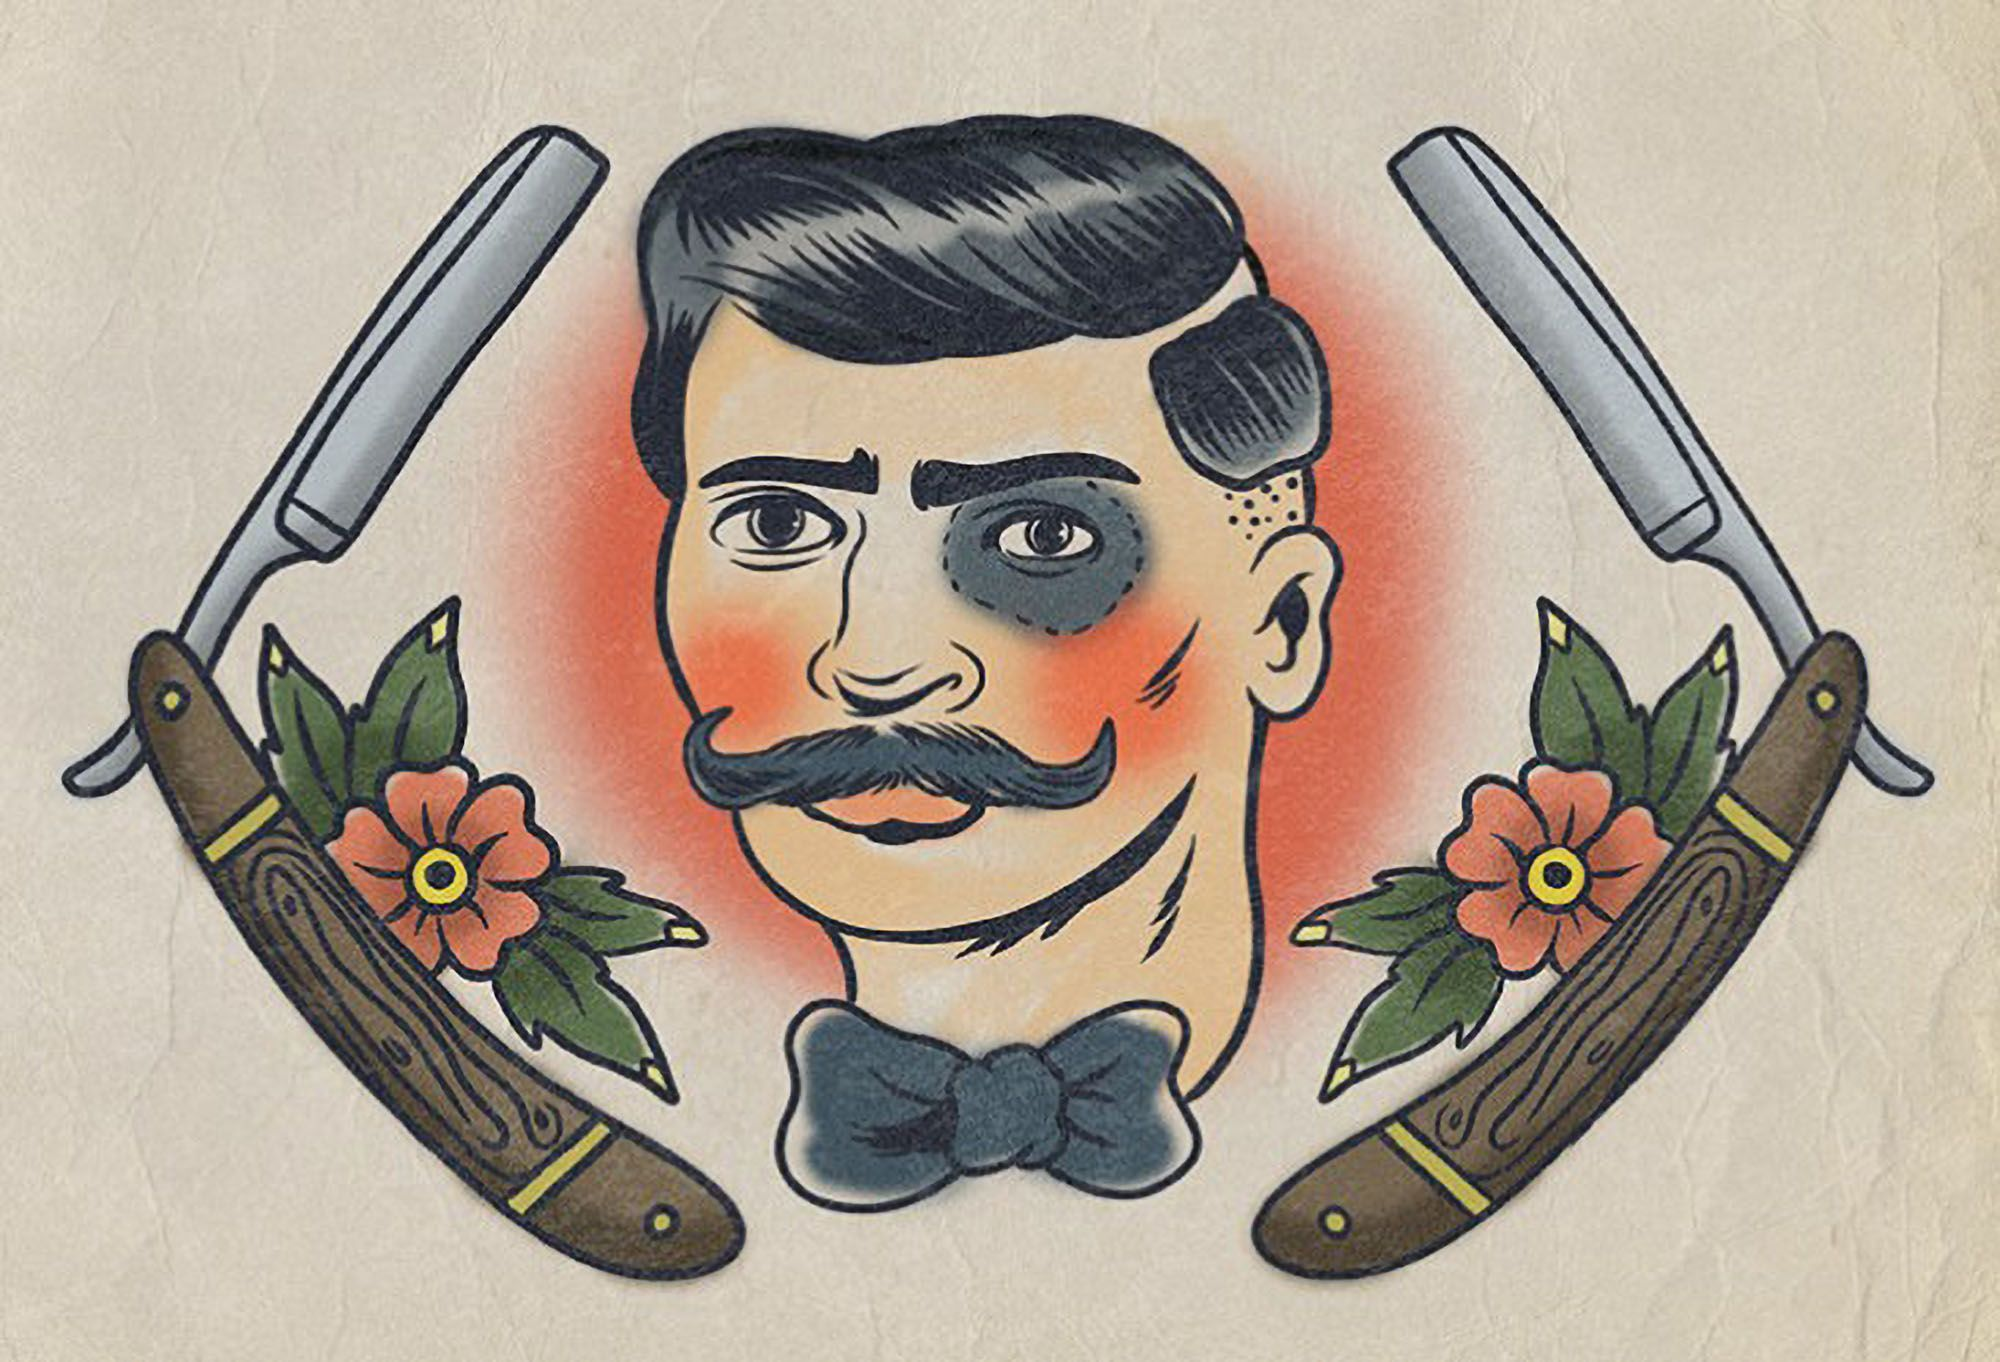 The Boston Barber & Tattoo Co. : A Cut Above | Customer Cotton